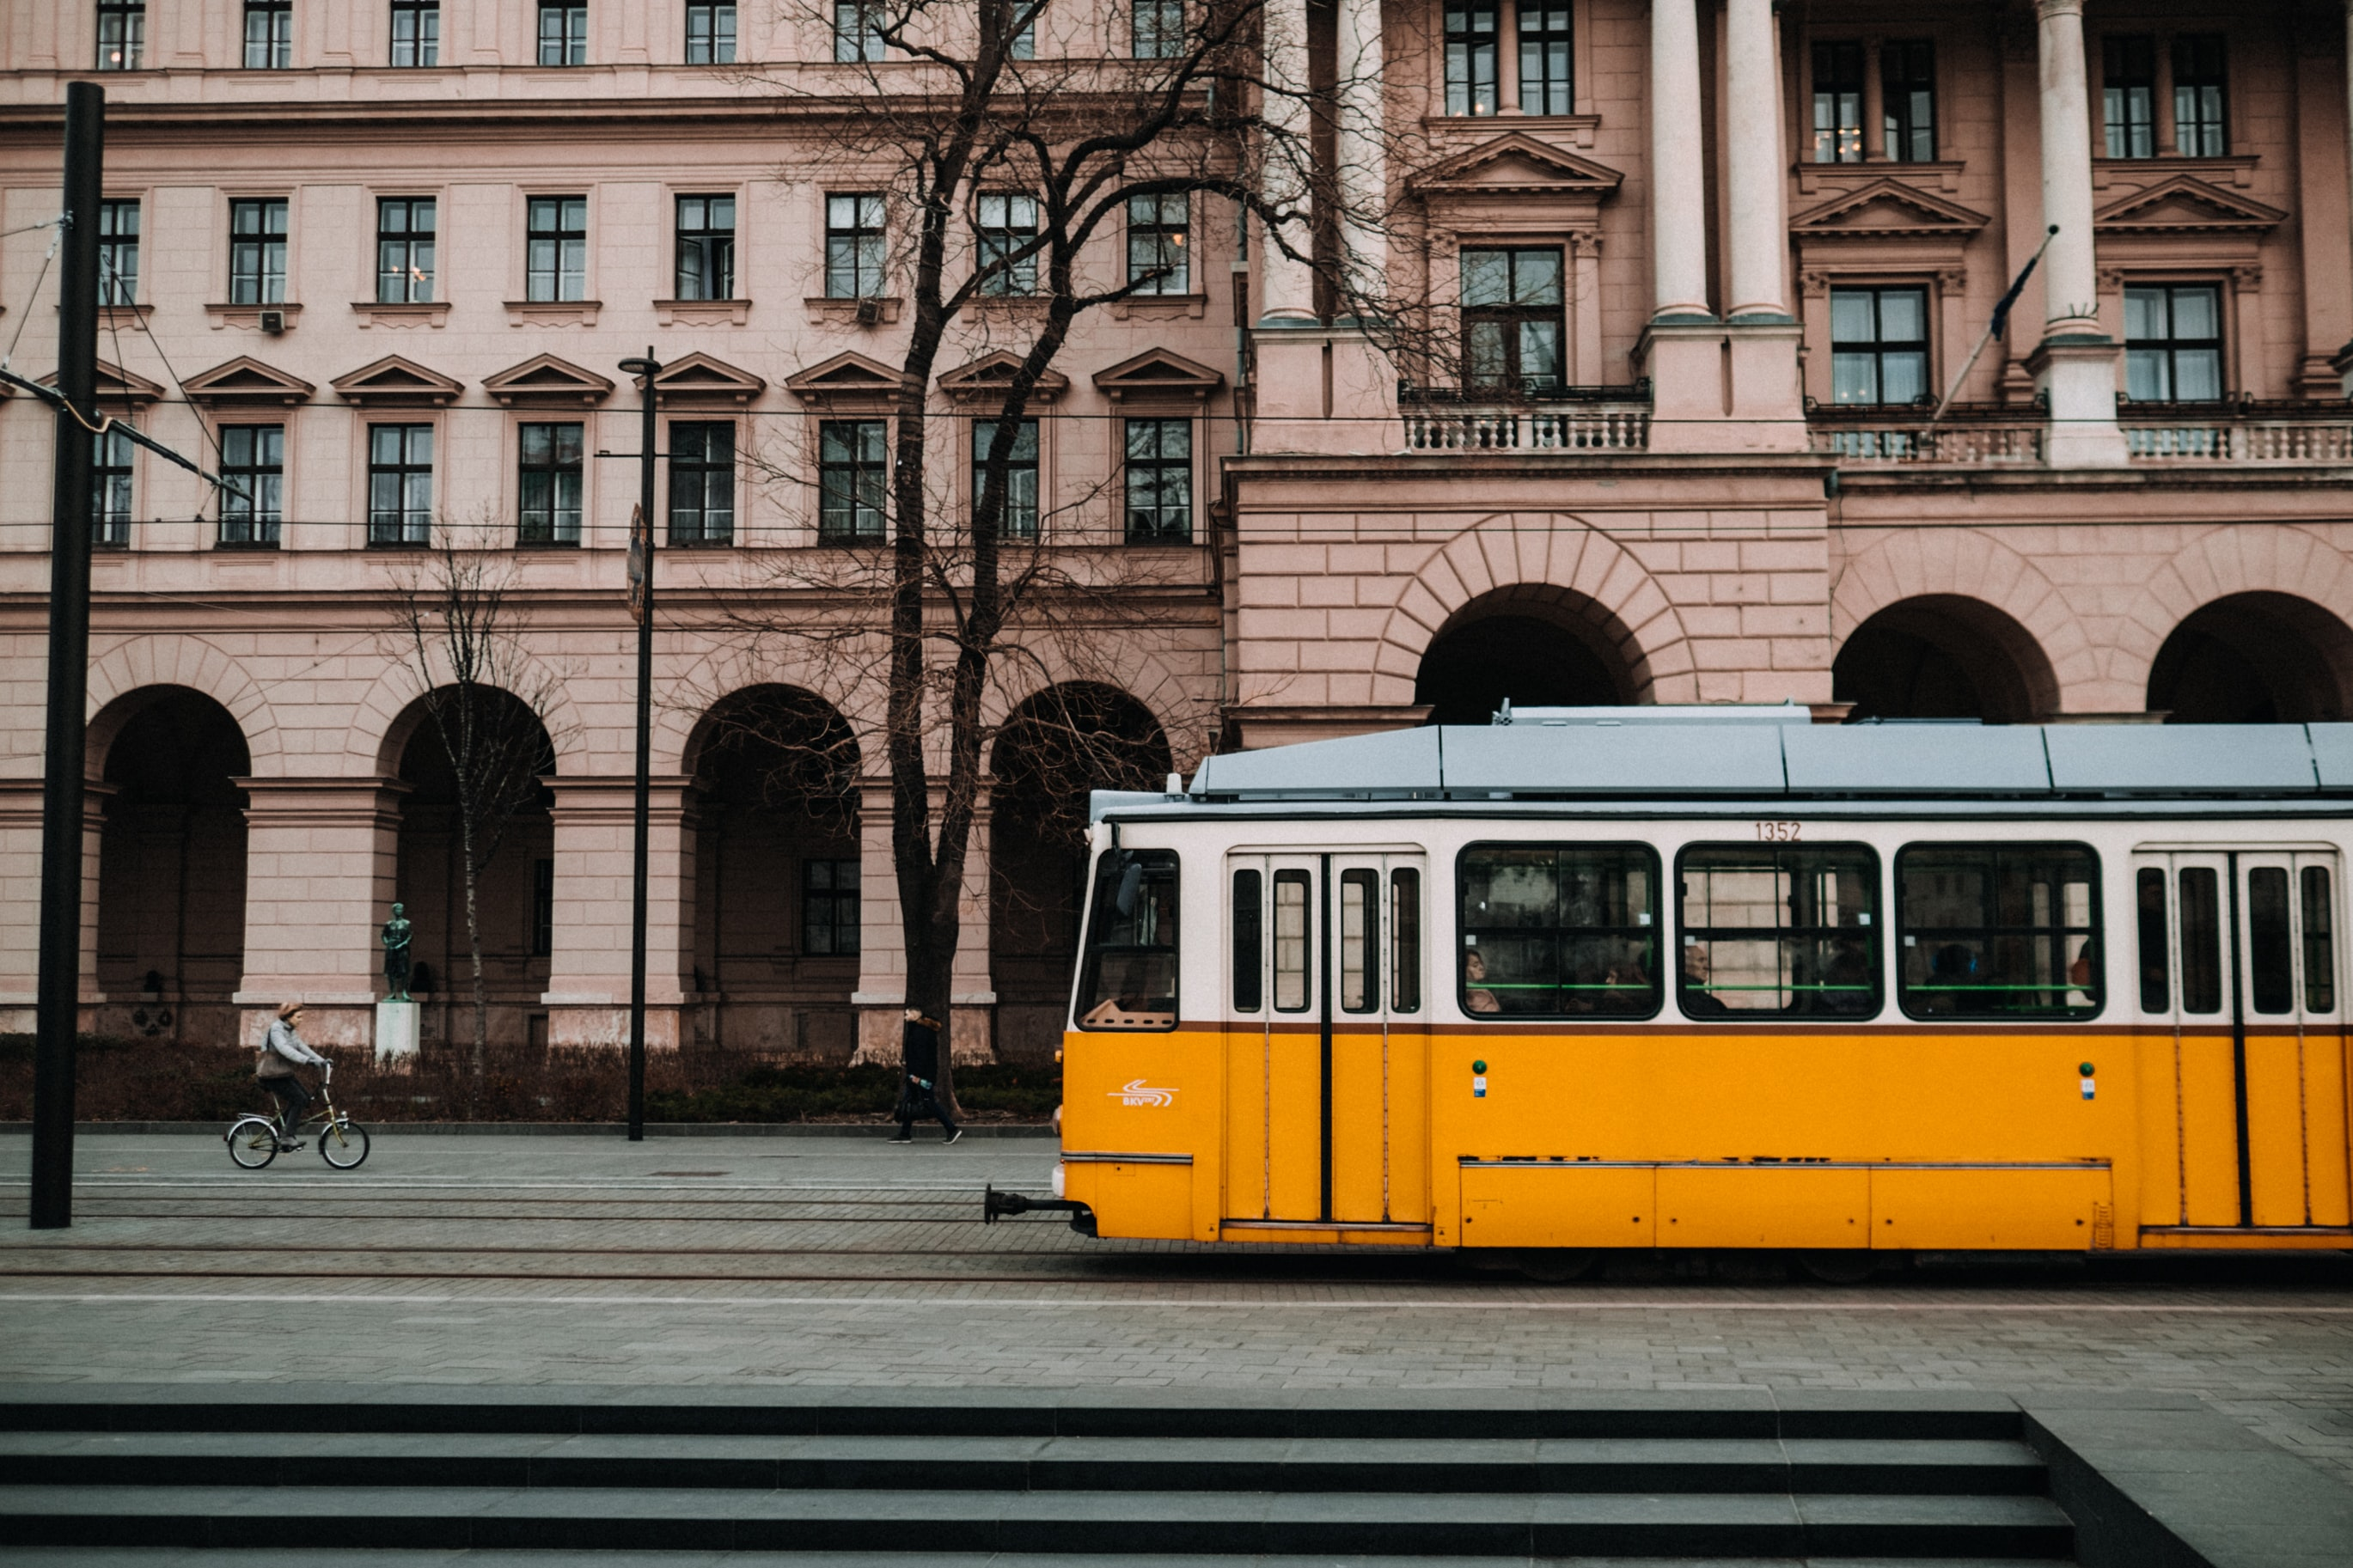 yellow and white train near building